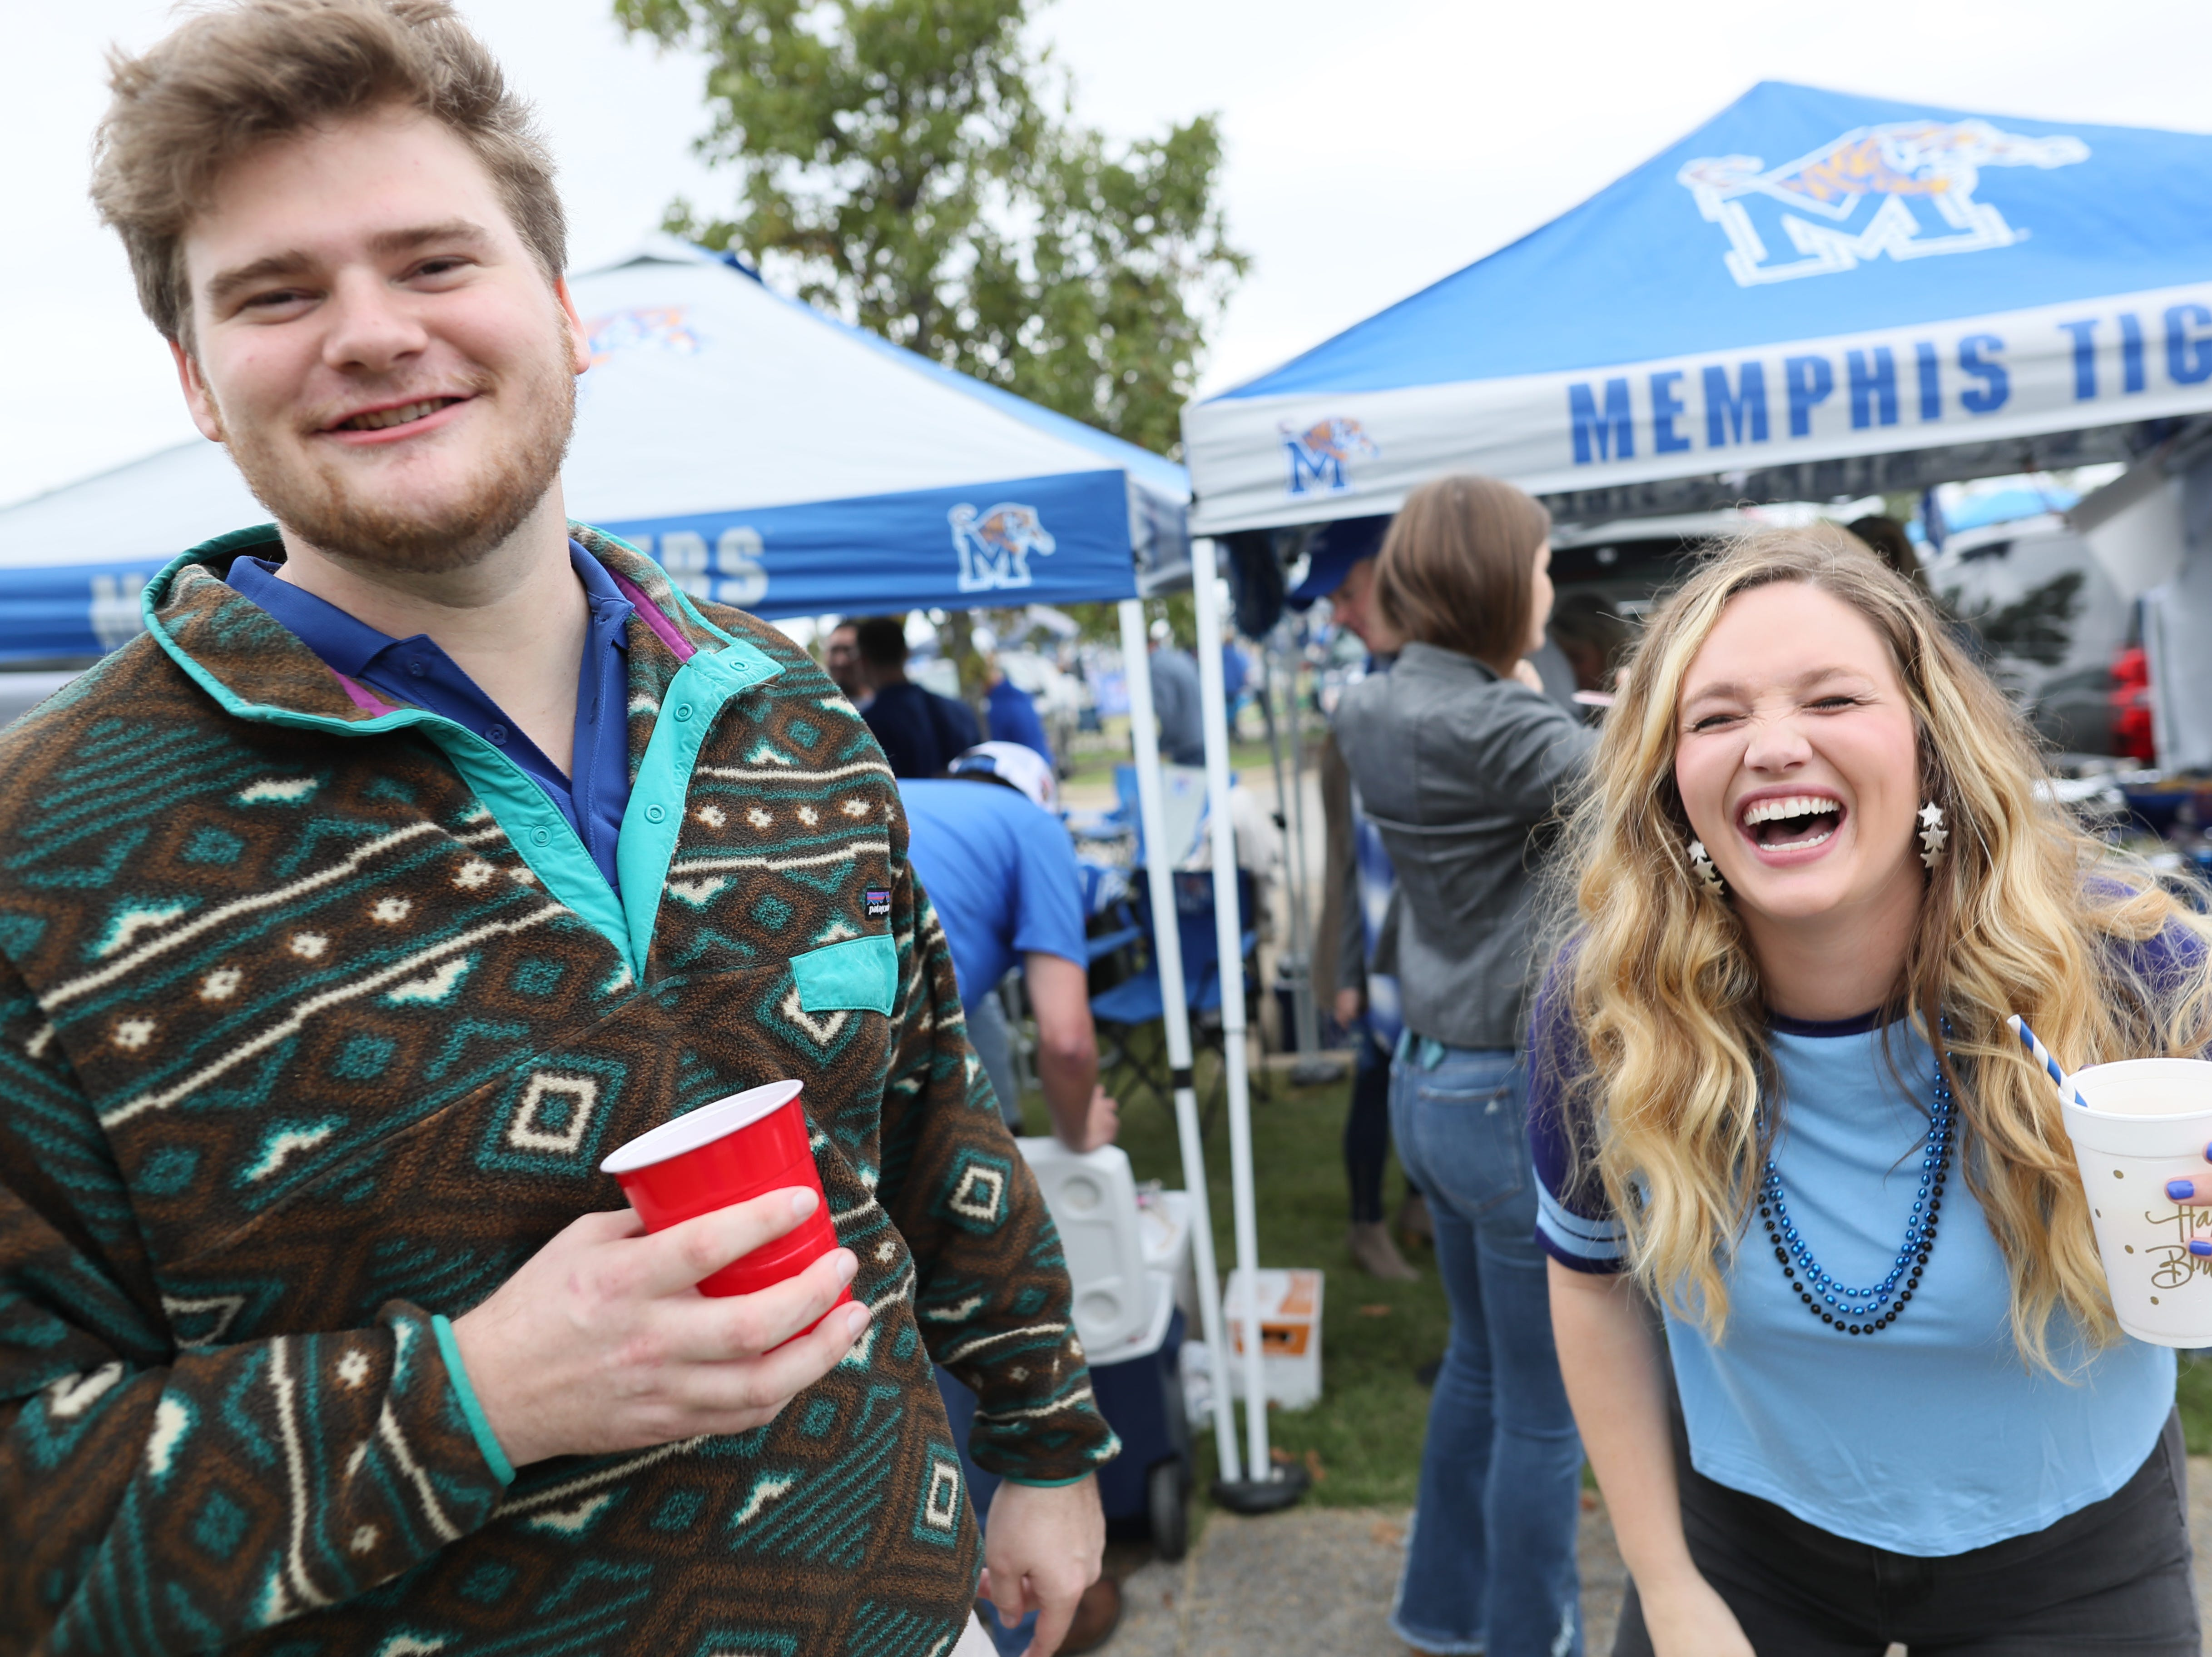 Zach Lyons and Hannah Deitz share a laugh as they tailgate before the Memphis Tigers's game against UCF at the Liberty Bowl on Saturday, Oct. 13, 2018.